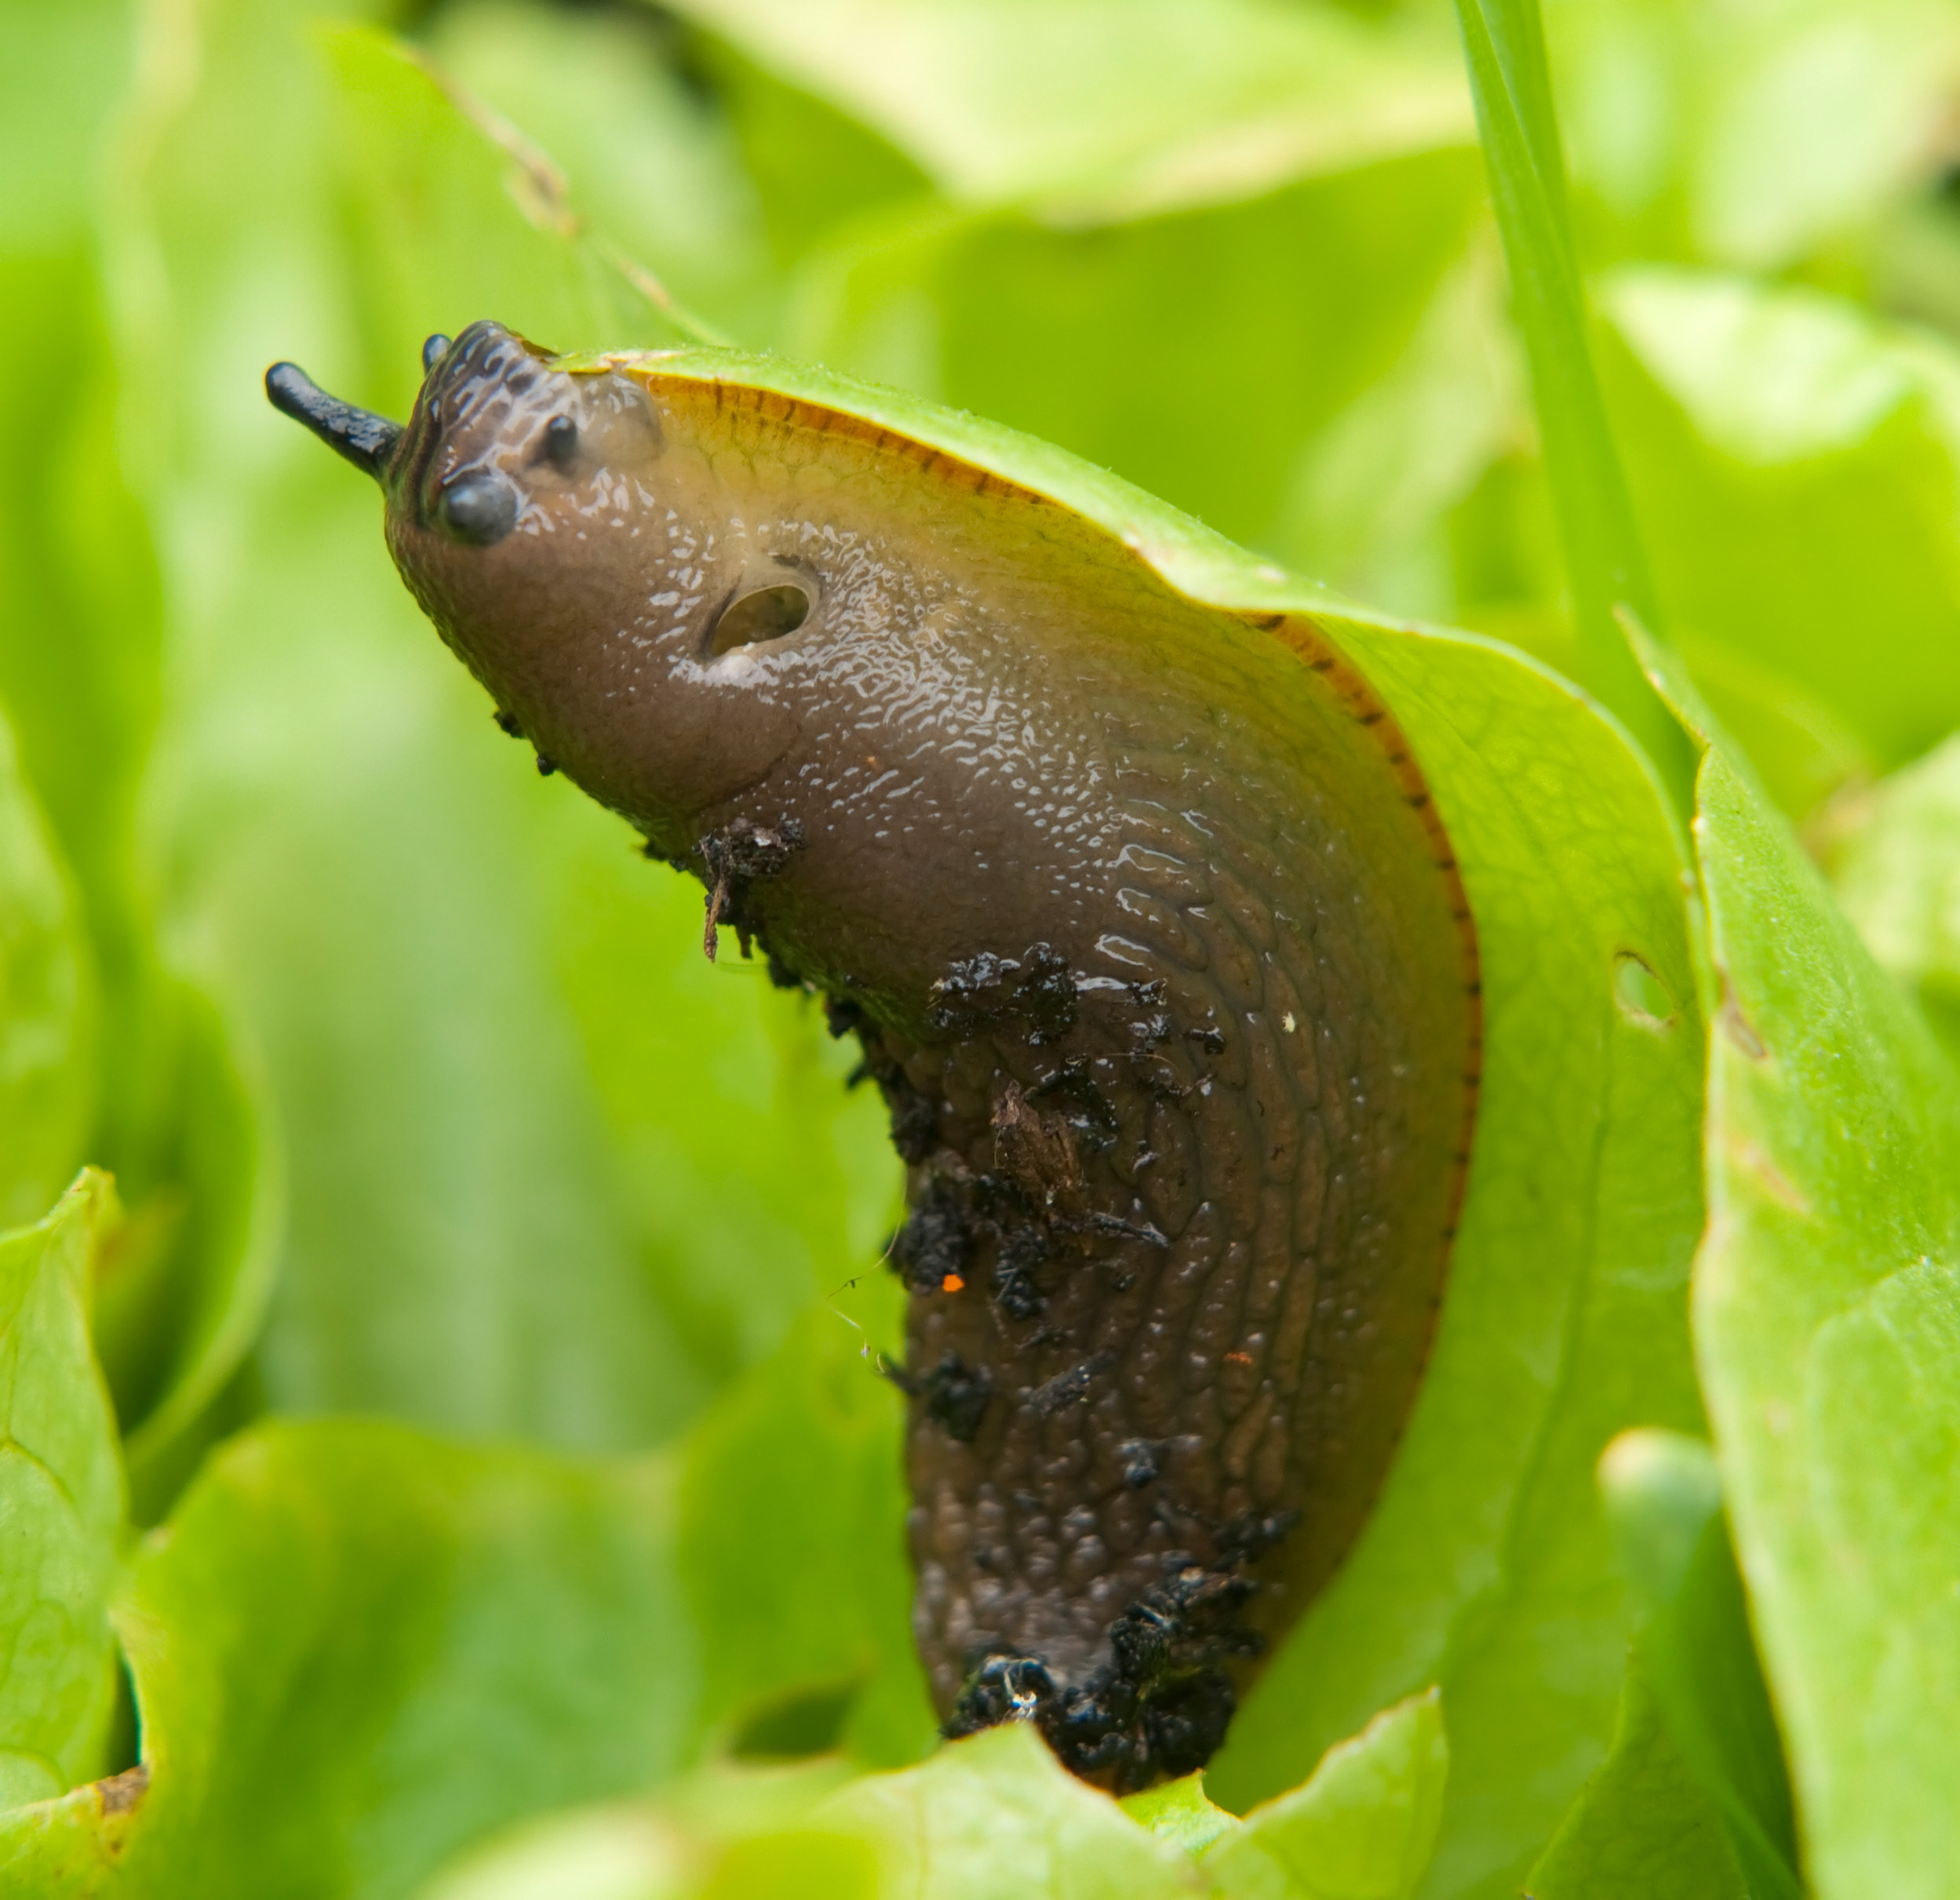 Place grit around plants to stop slugs in their tracks. (Thinkstock/PA)